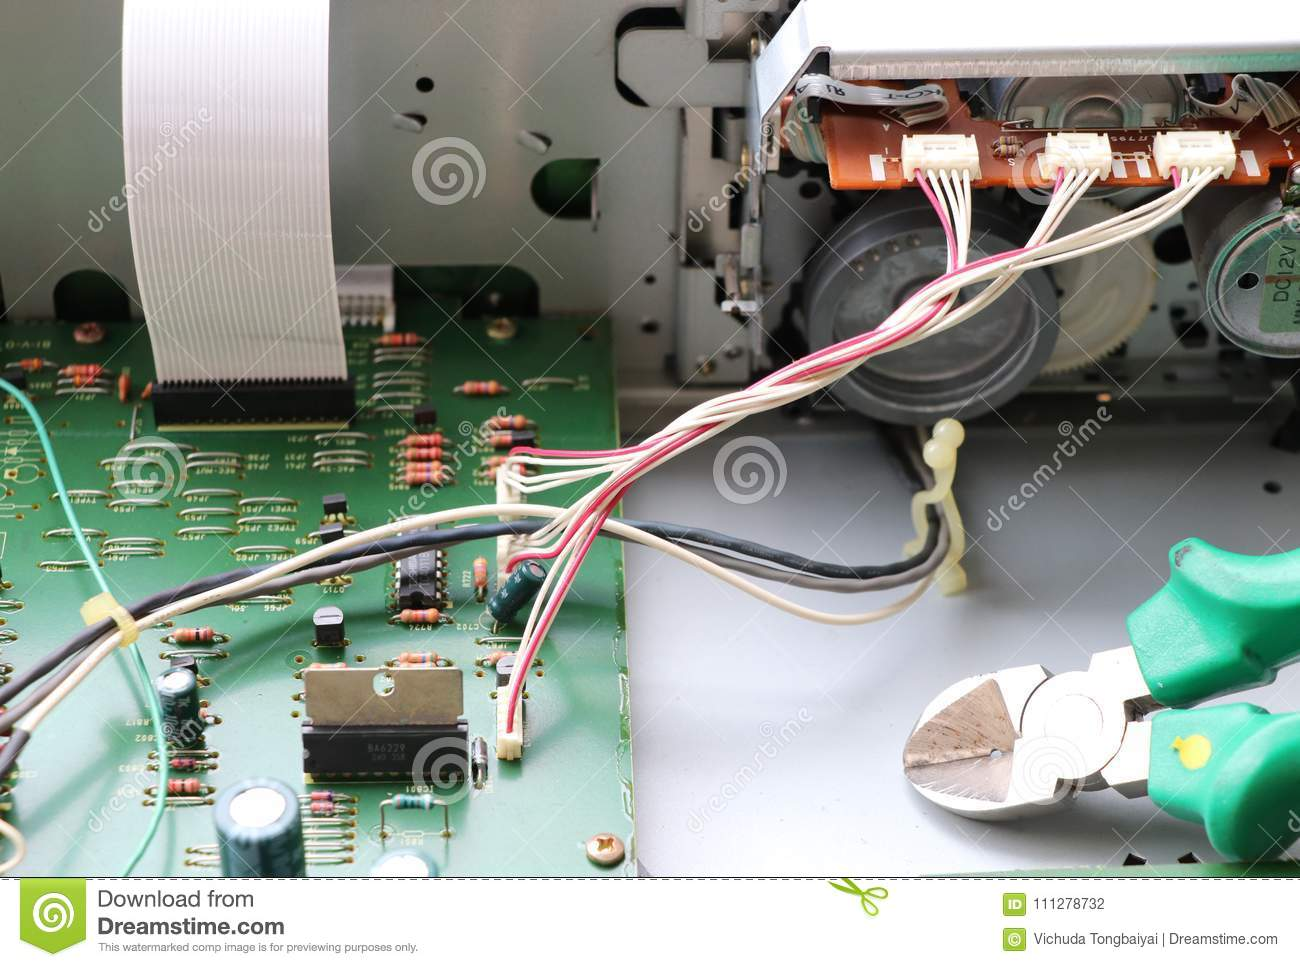 Contacts A Circuit Board Wiring Diagram Master Blogs Icm272 Control And Electronic Digital Line Contact Mainboard Back Rh Dreamstime Com Smiplecircuit